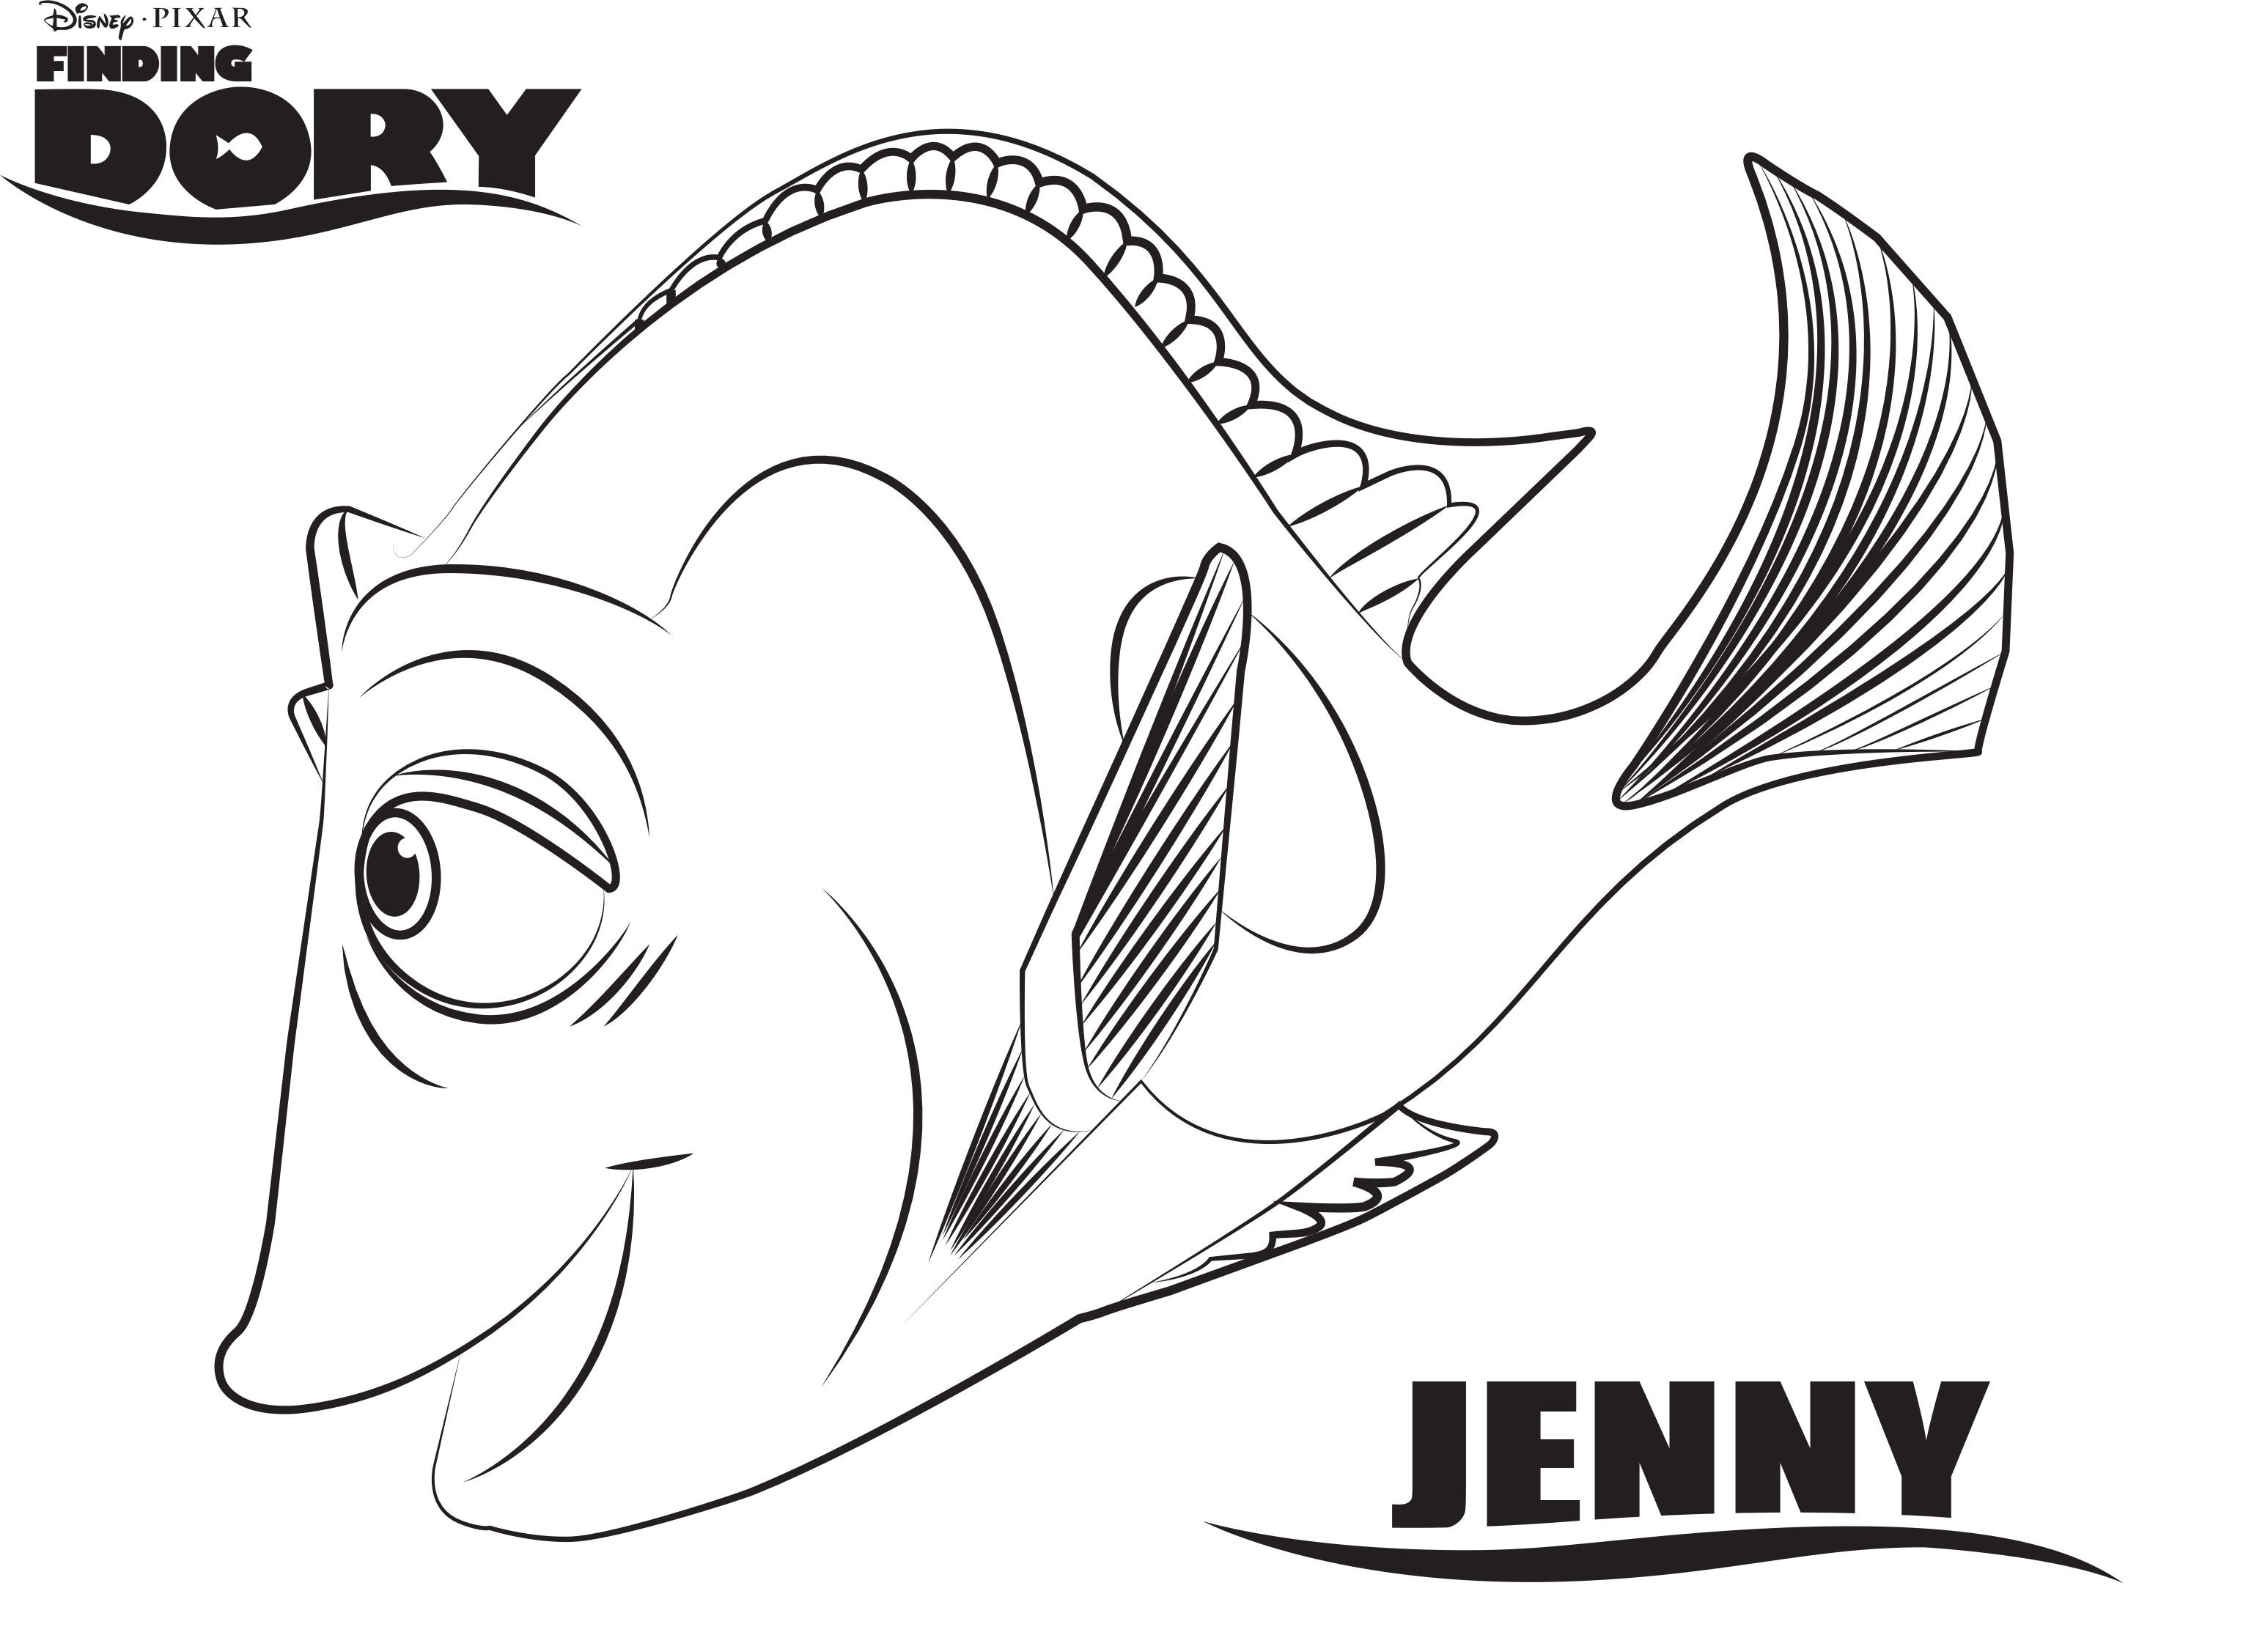 disneys finding dory jenny coloring page